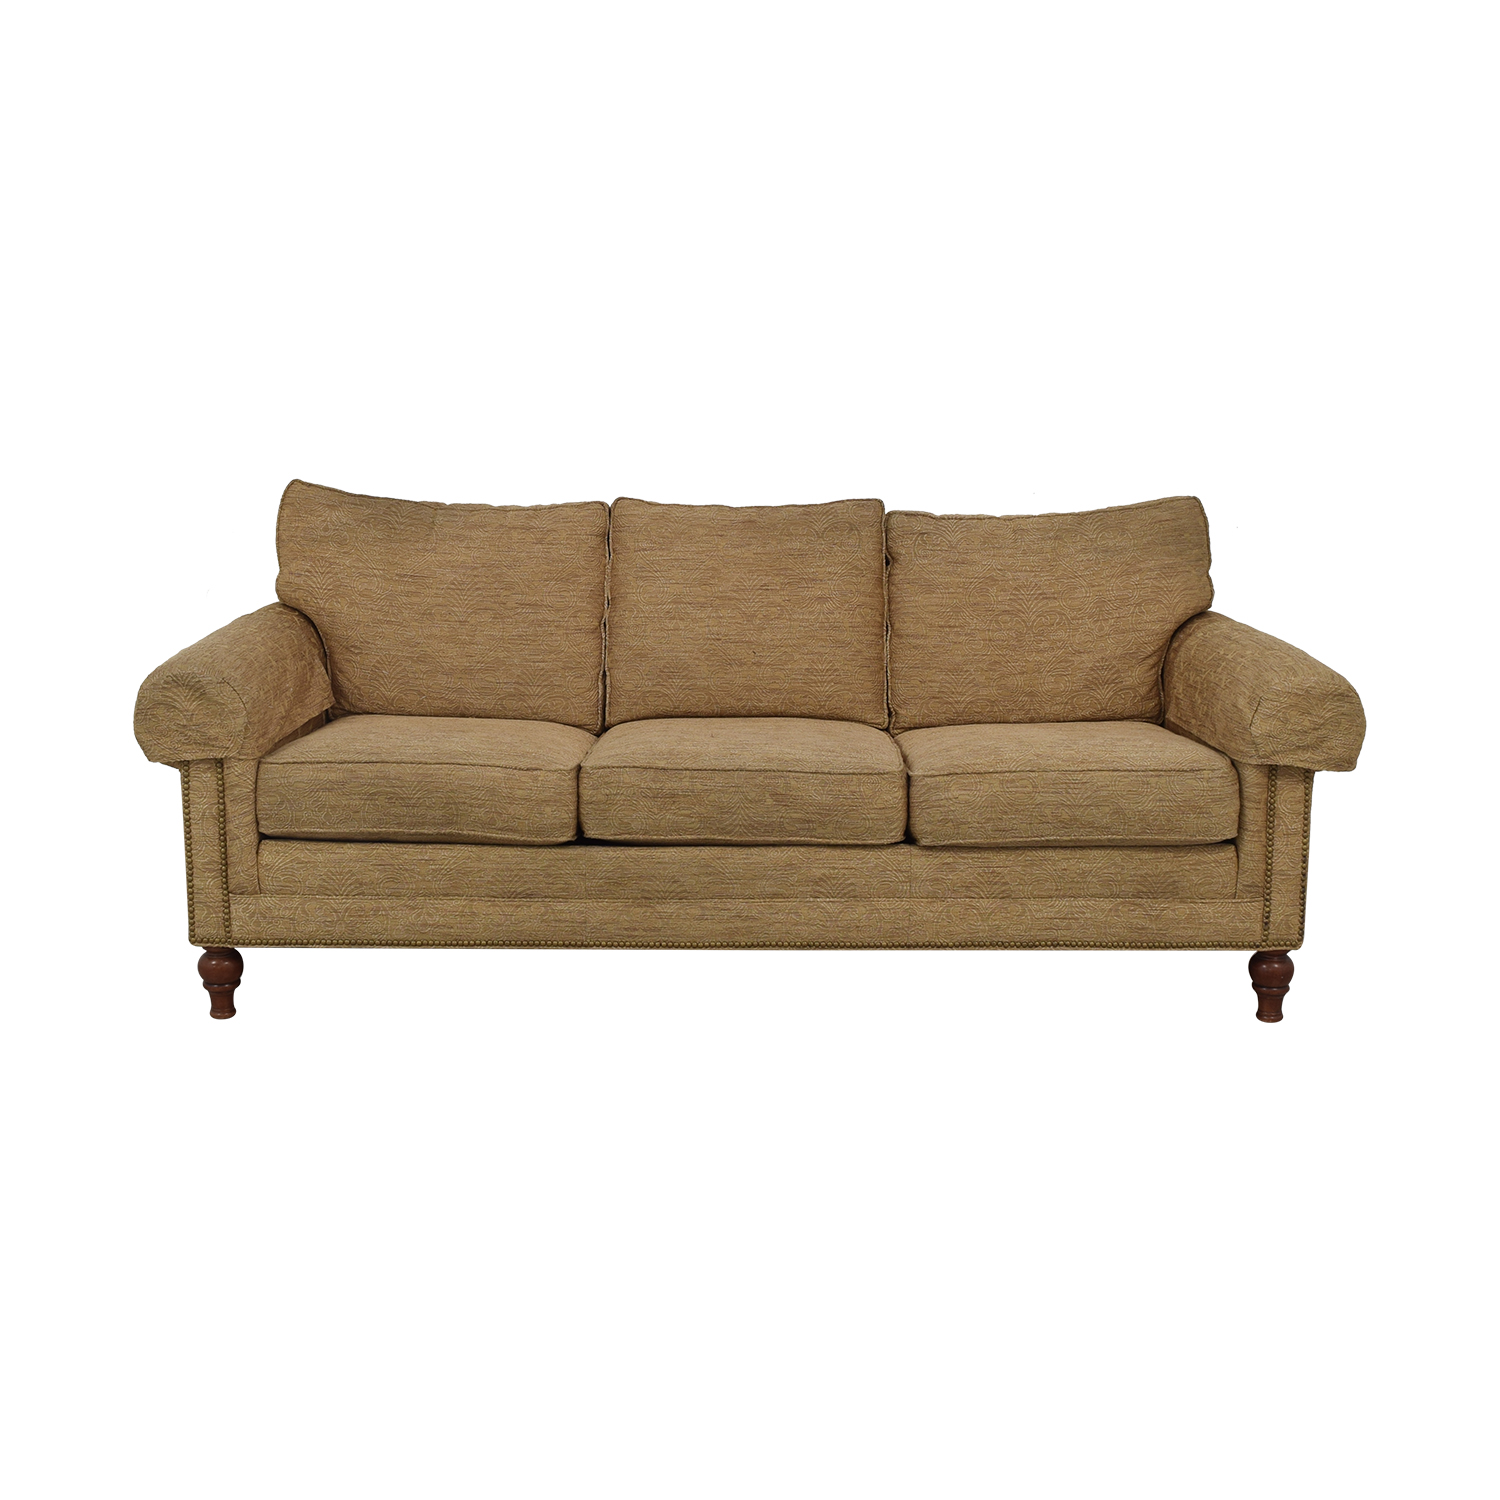 Ethan Allen Ethan Allen Three Cushion Sofa on sale